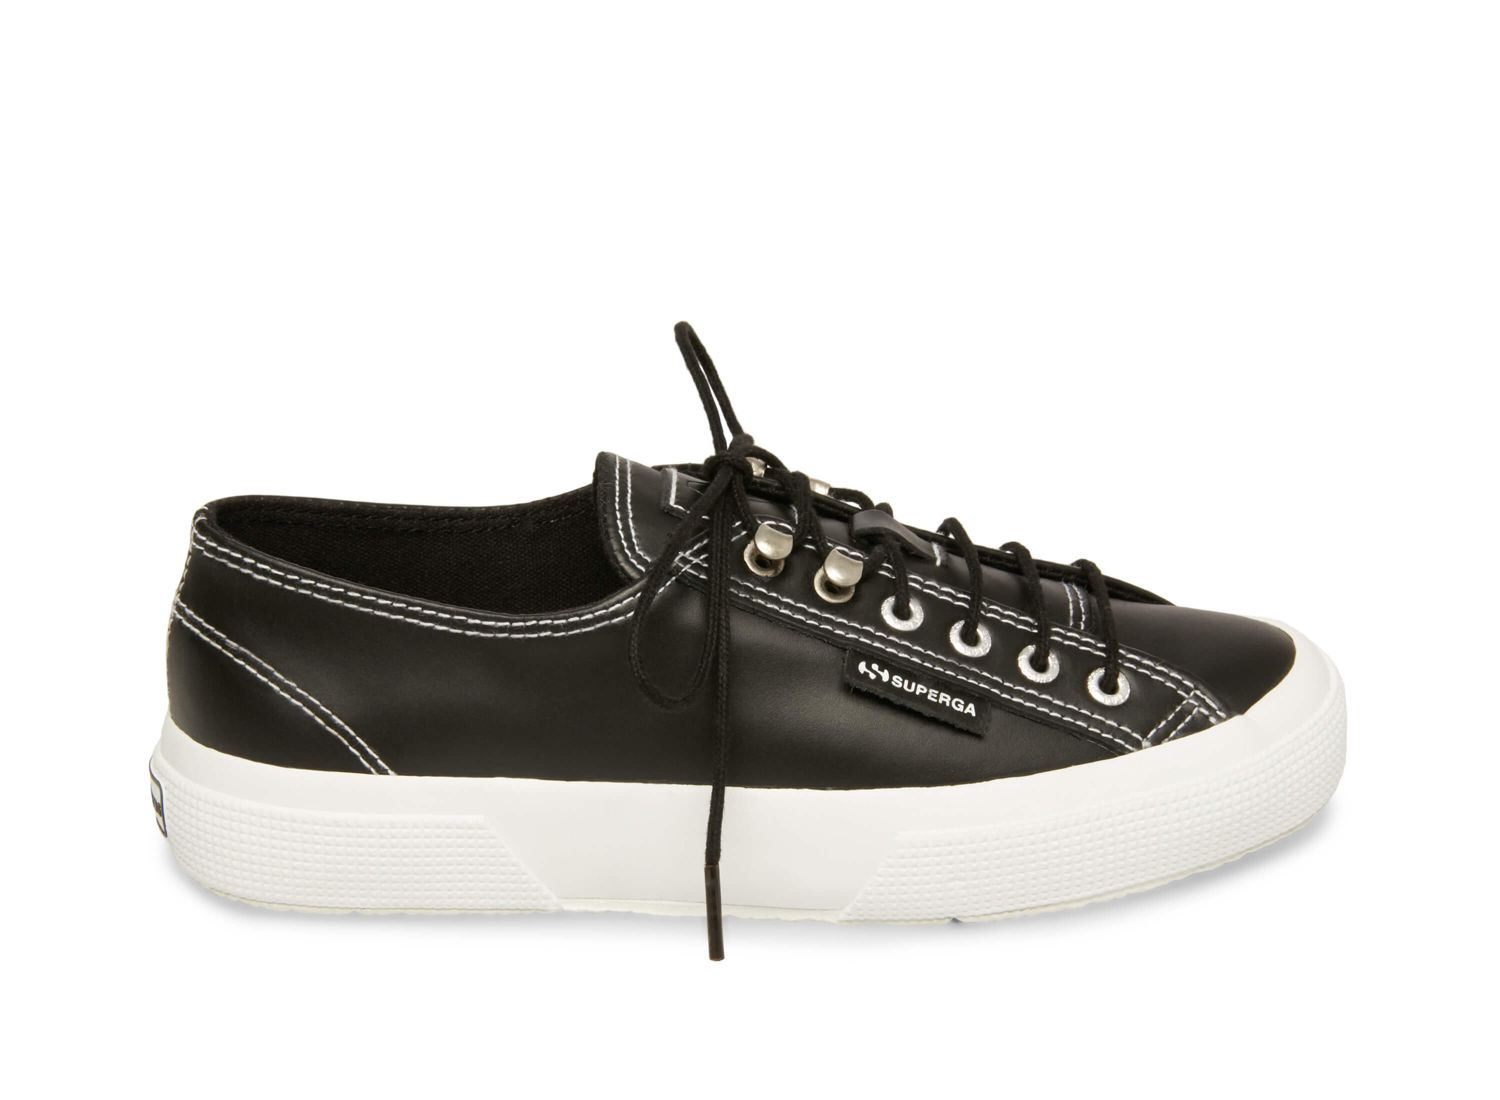 Superga 2748 leabrushw black leather side